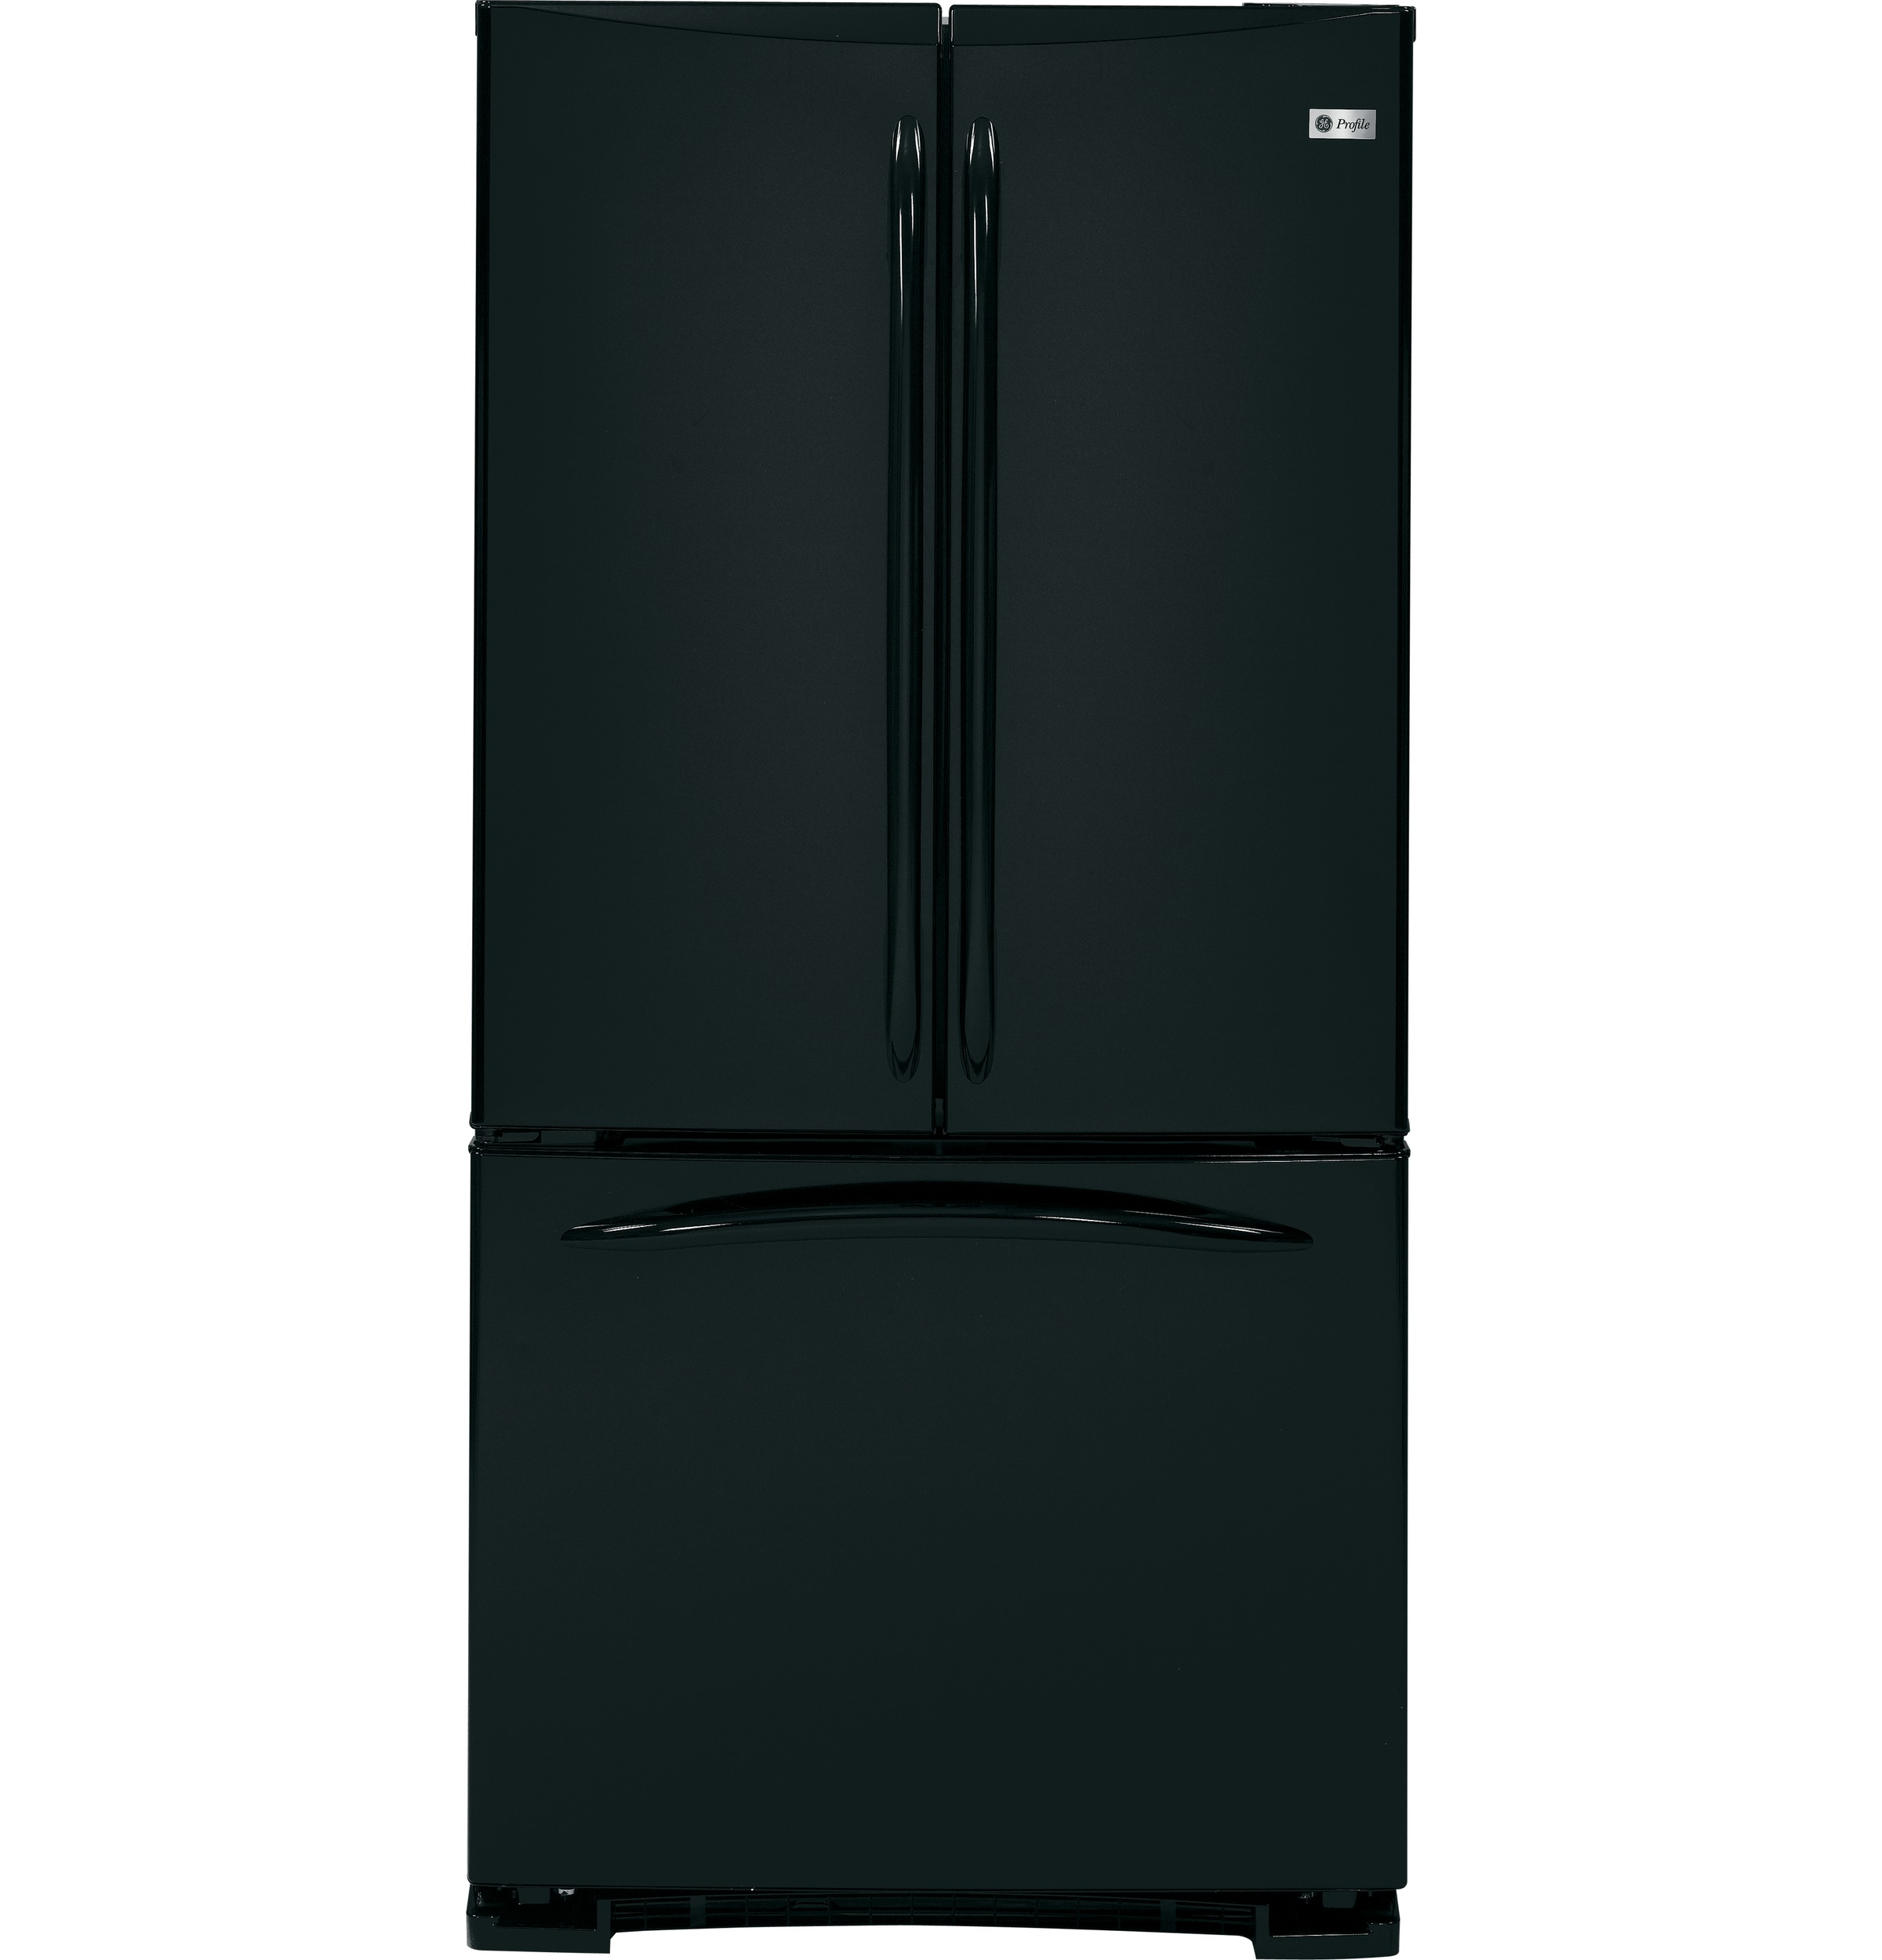 GE Profile™ 22.2 Cu. Ft. Bottom-Freezer Refrigerator with Internal Dispenser